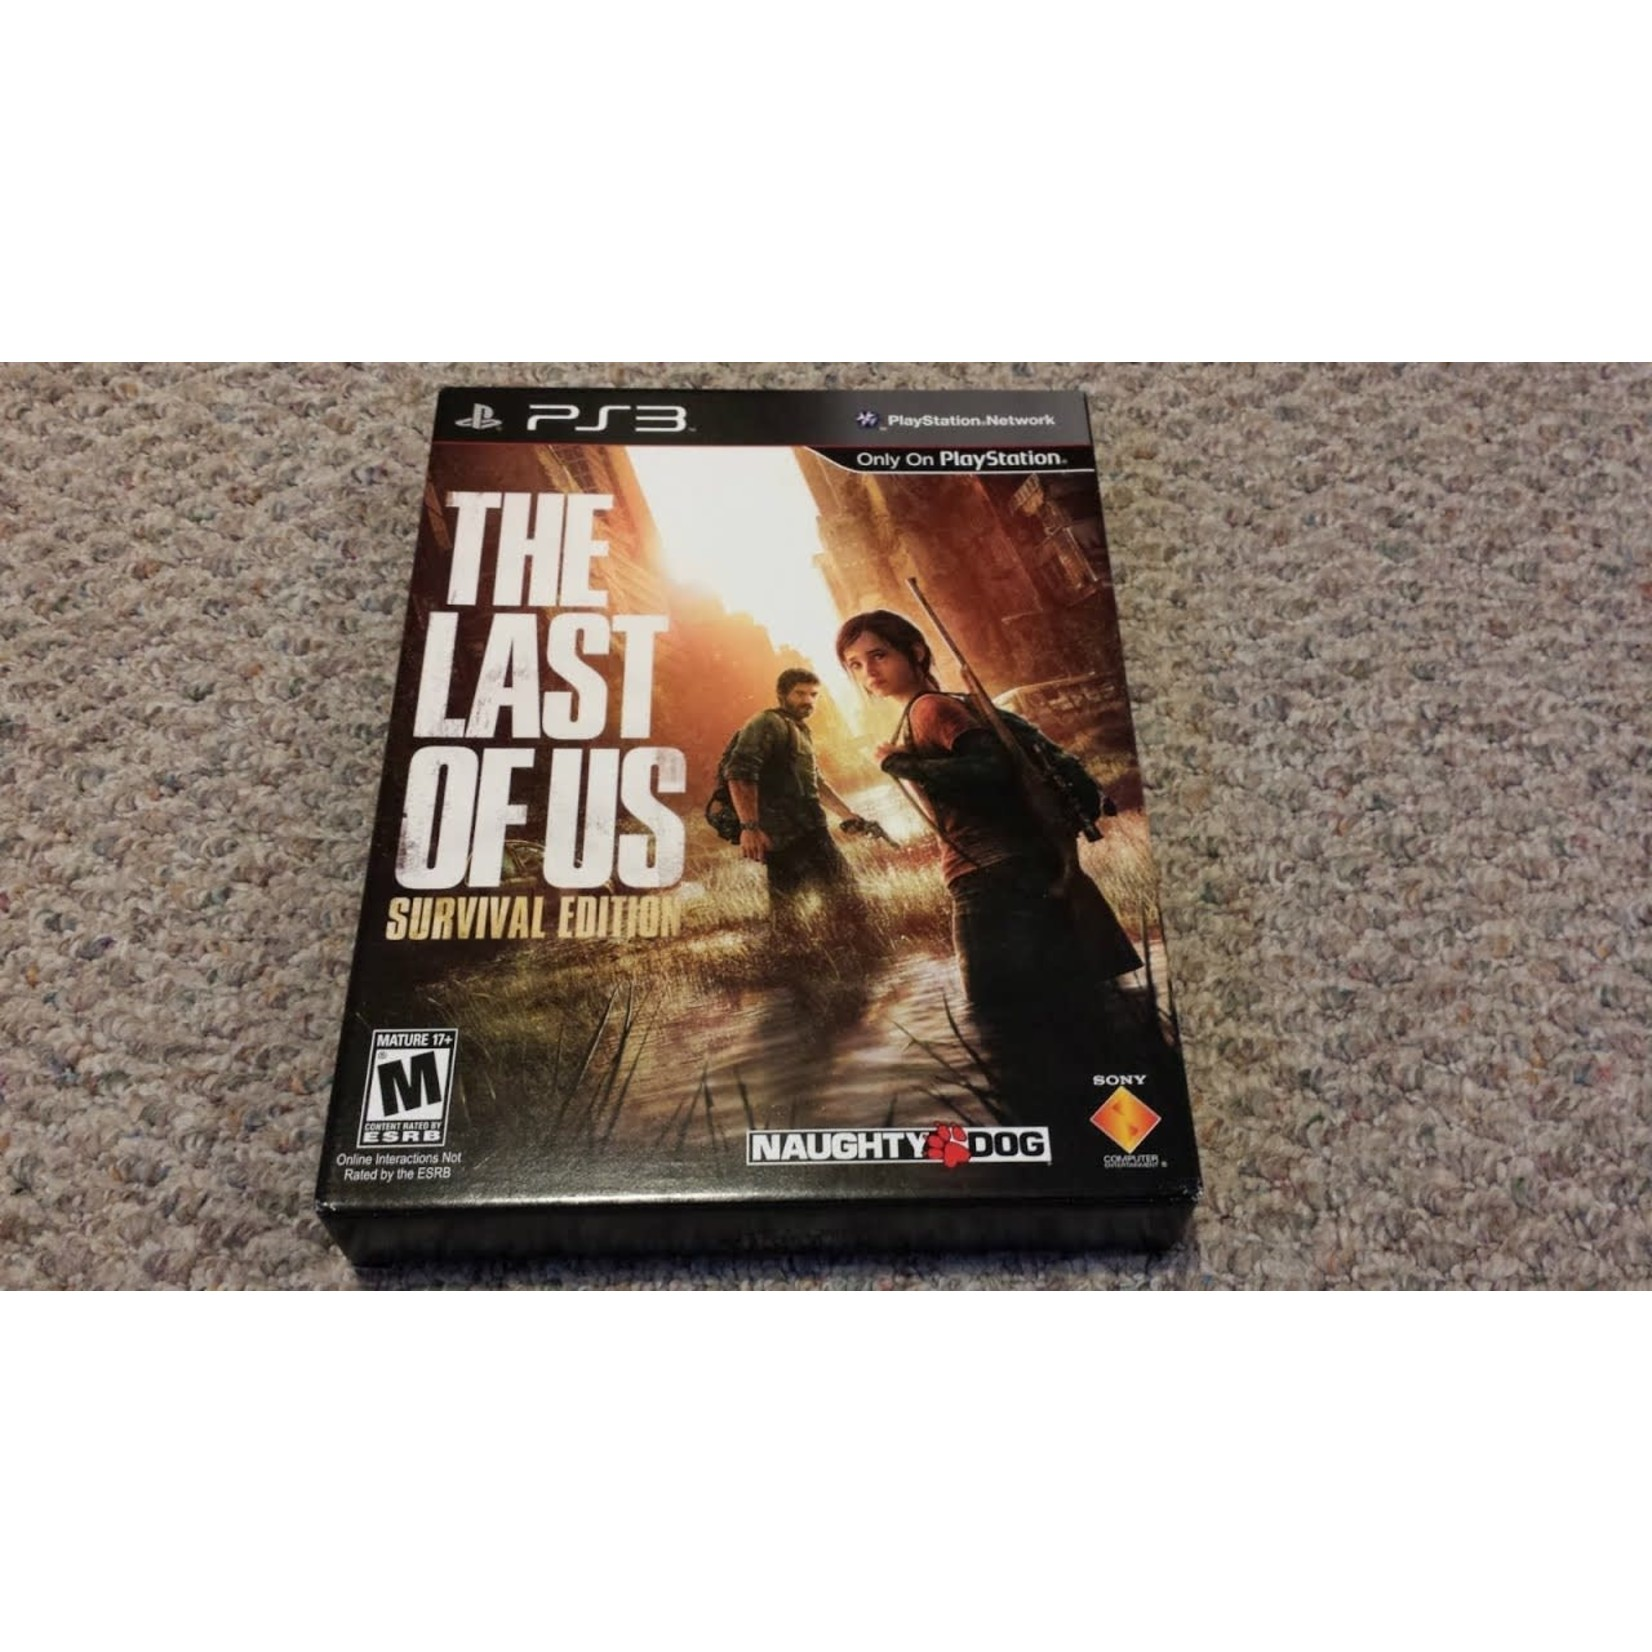 PS3-The Last of Us Survival Edition (no comic)